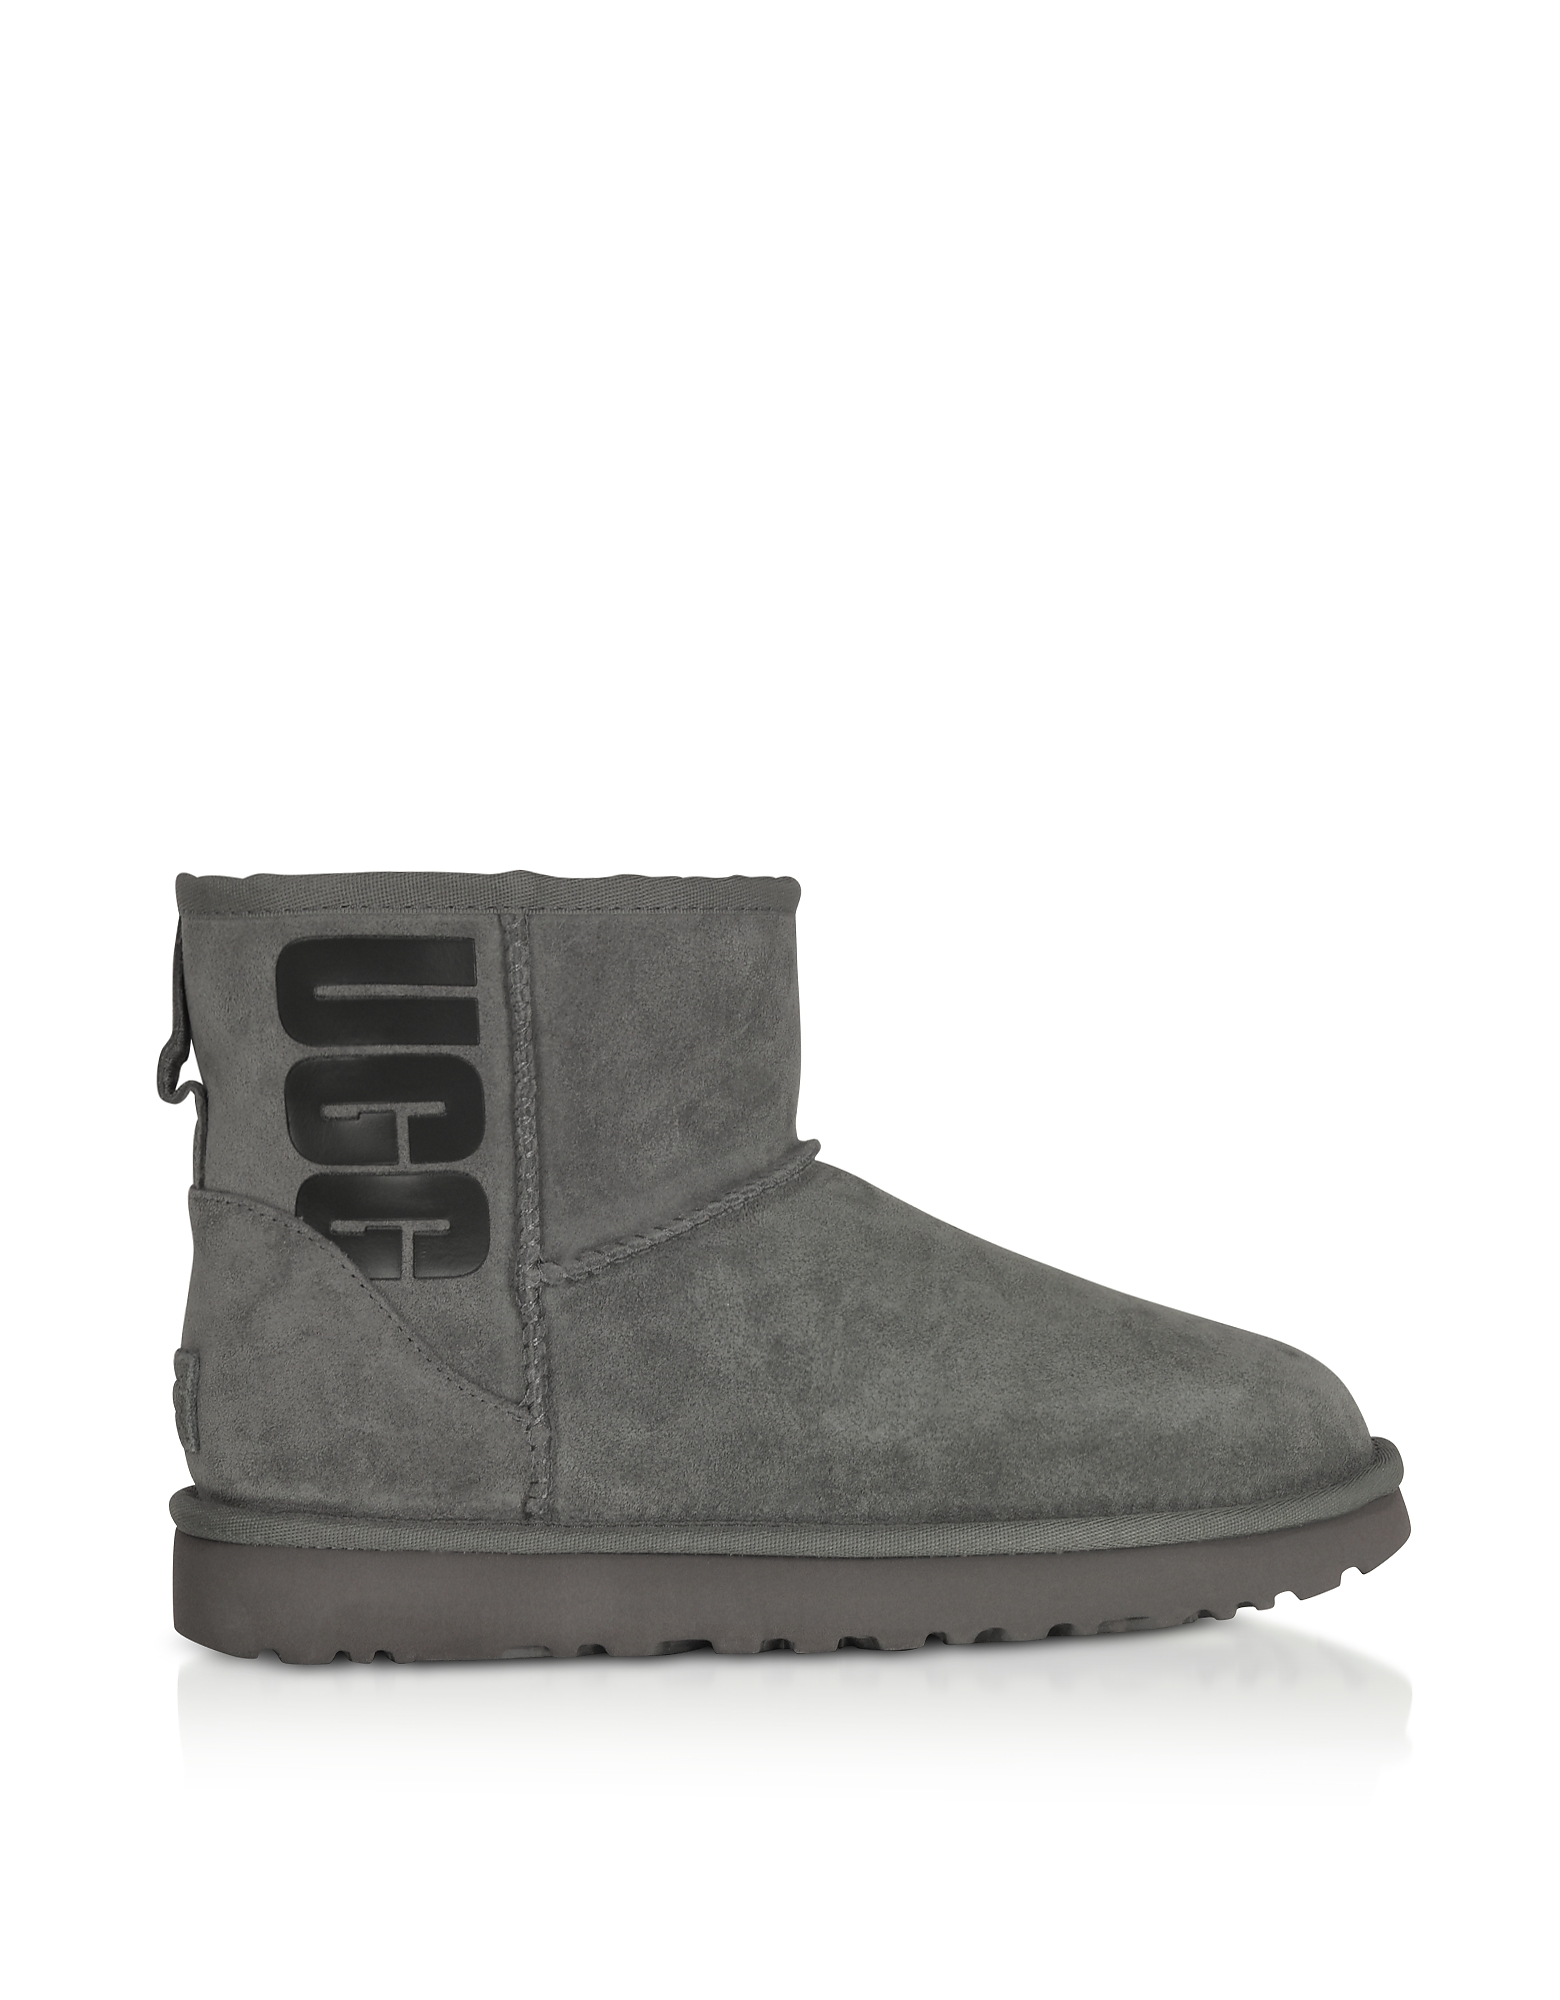 UGG Designer Shoes, Grey Mini Classic Ugg Rubber Logo Boots